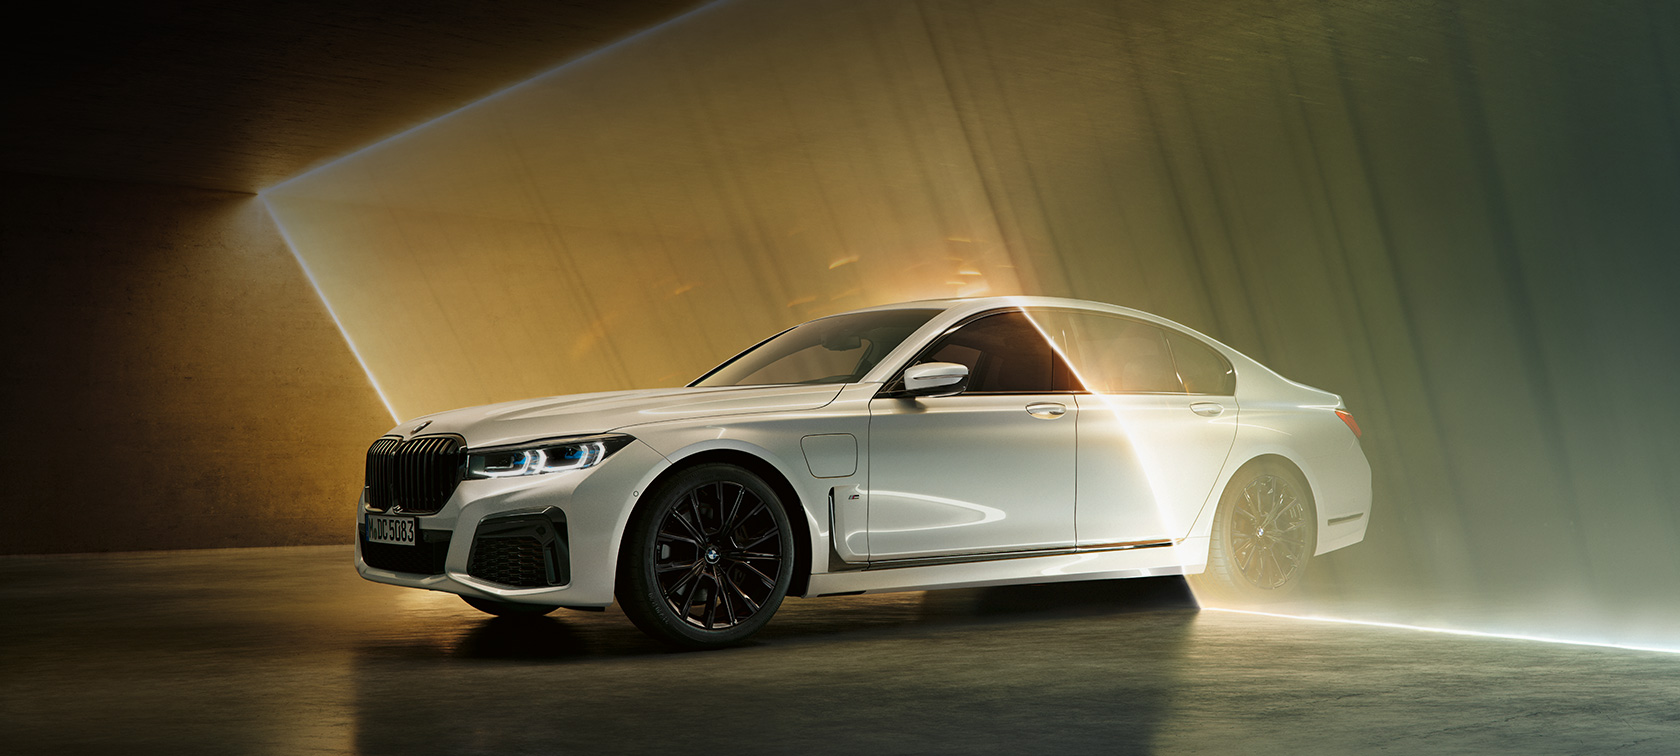 BMW 7 Series Sedan: white BMW in three-quarter front view surrounded by beam of light